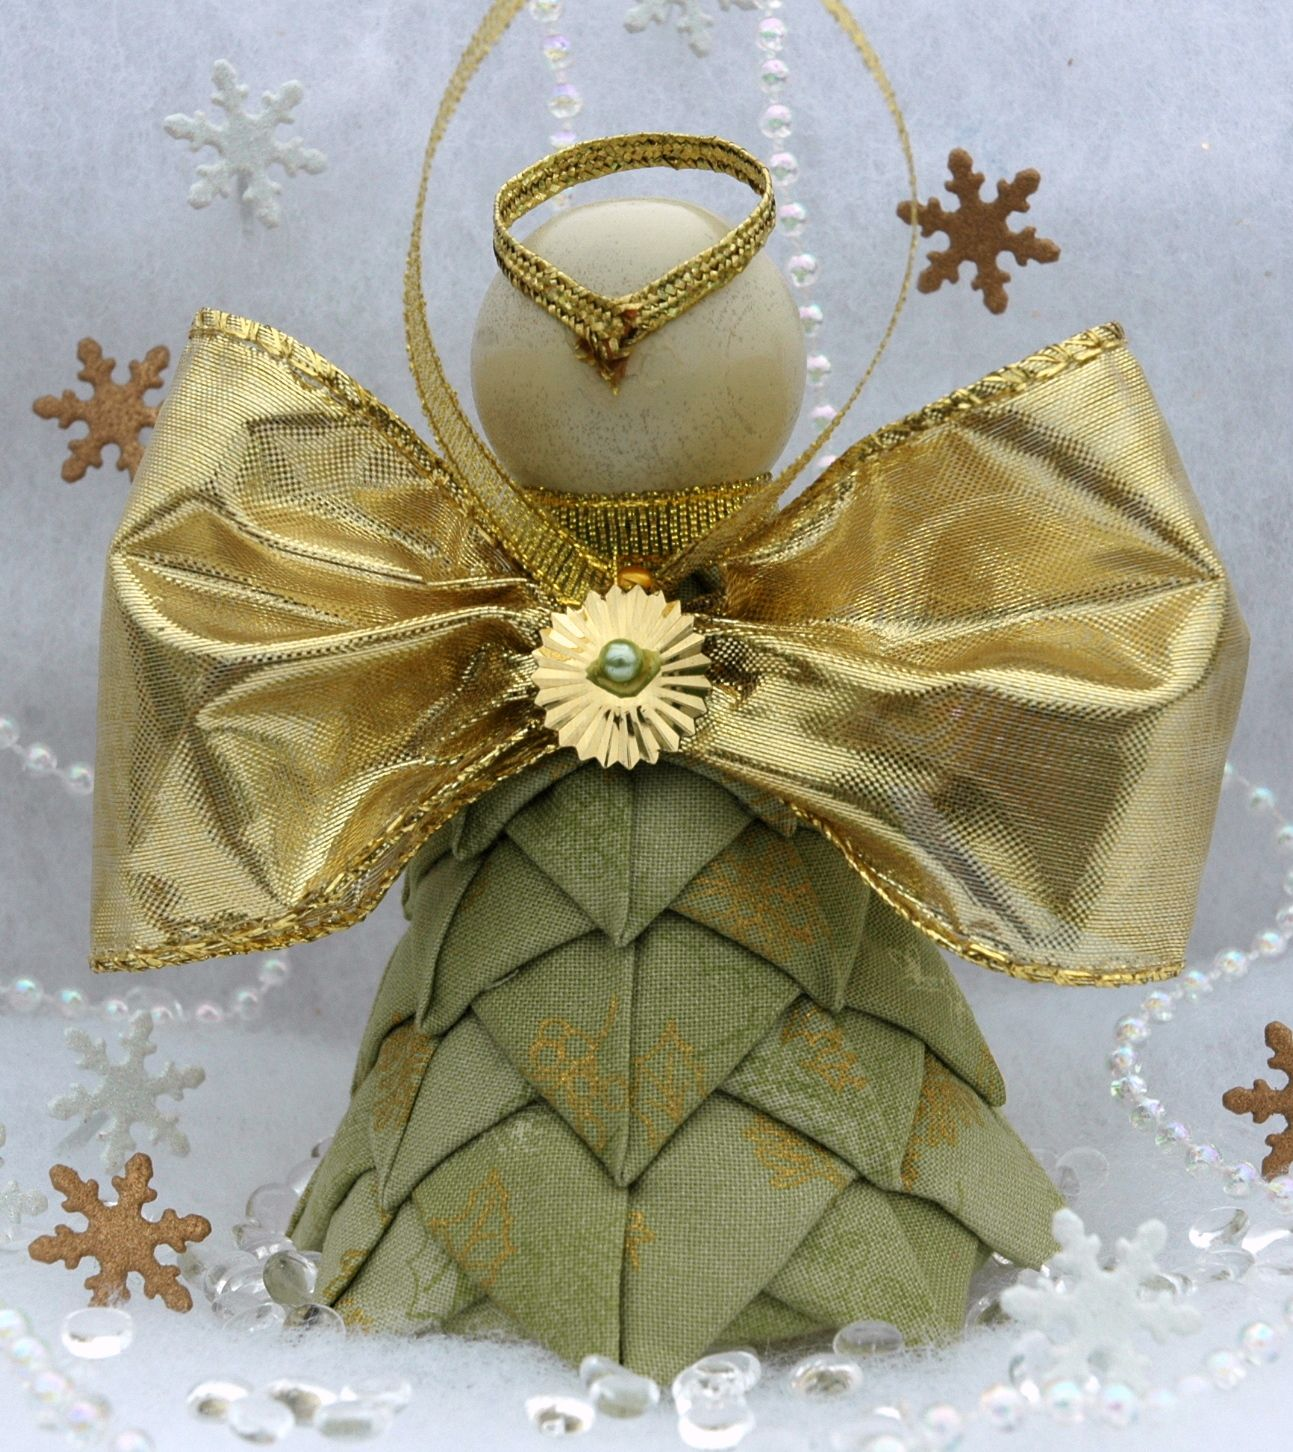 Angel Decorations To Make: Easy To Make Angel Ornaments